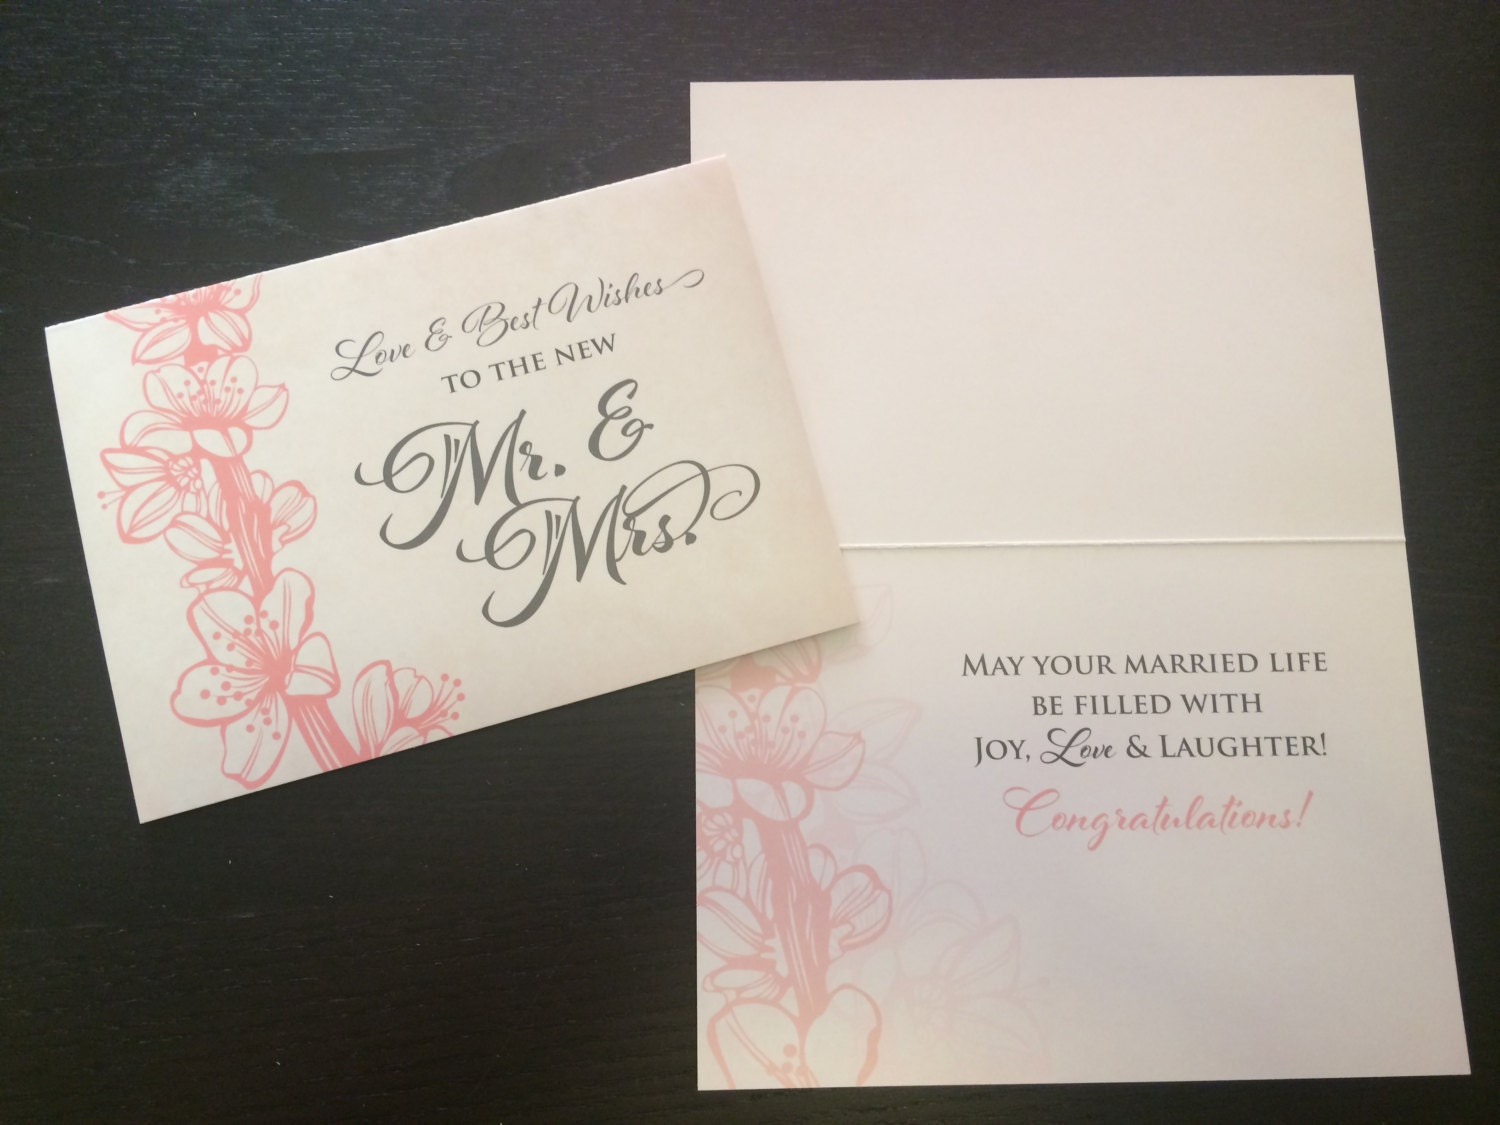 Wedding congratulations cards bulk greeting cards 5x7 a7 zoom kristyandbryce Choice Image